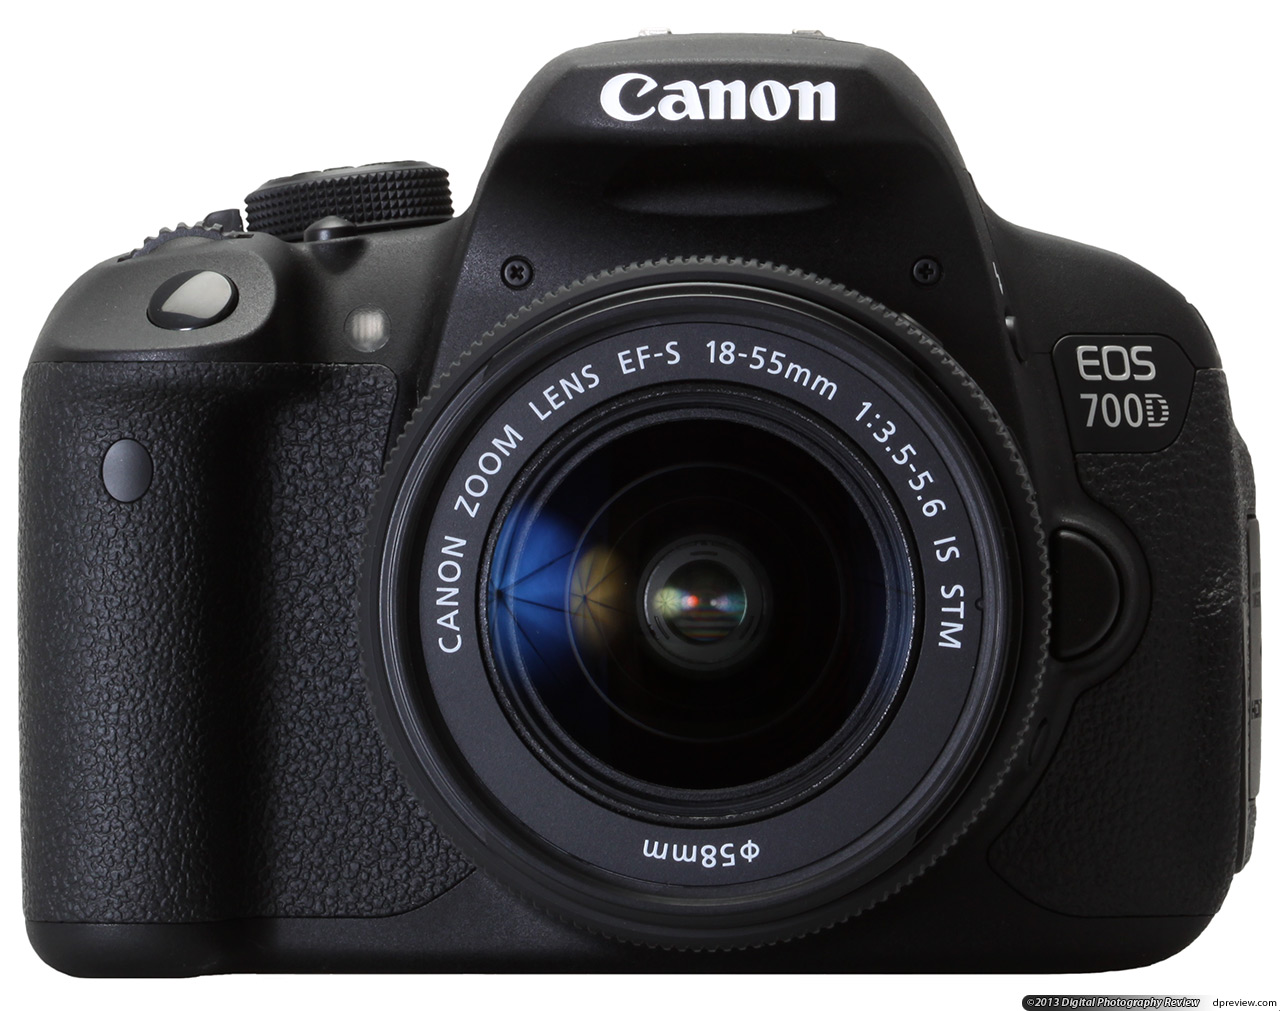 canon eos 700d rebel t5i in depth review digital